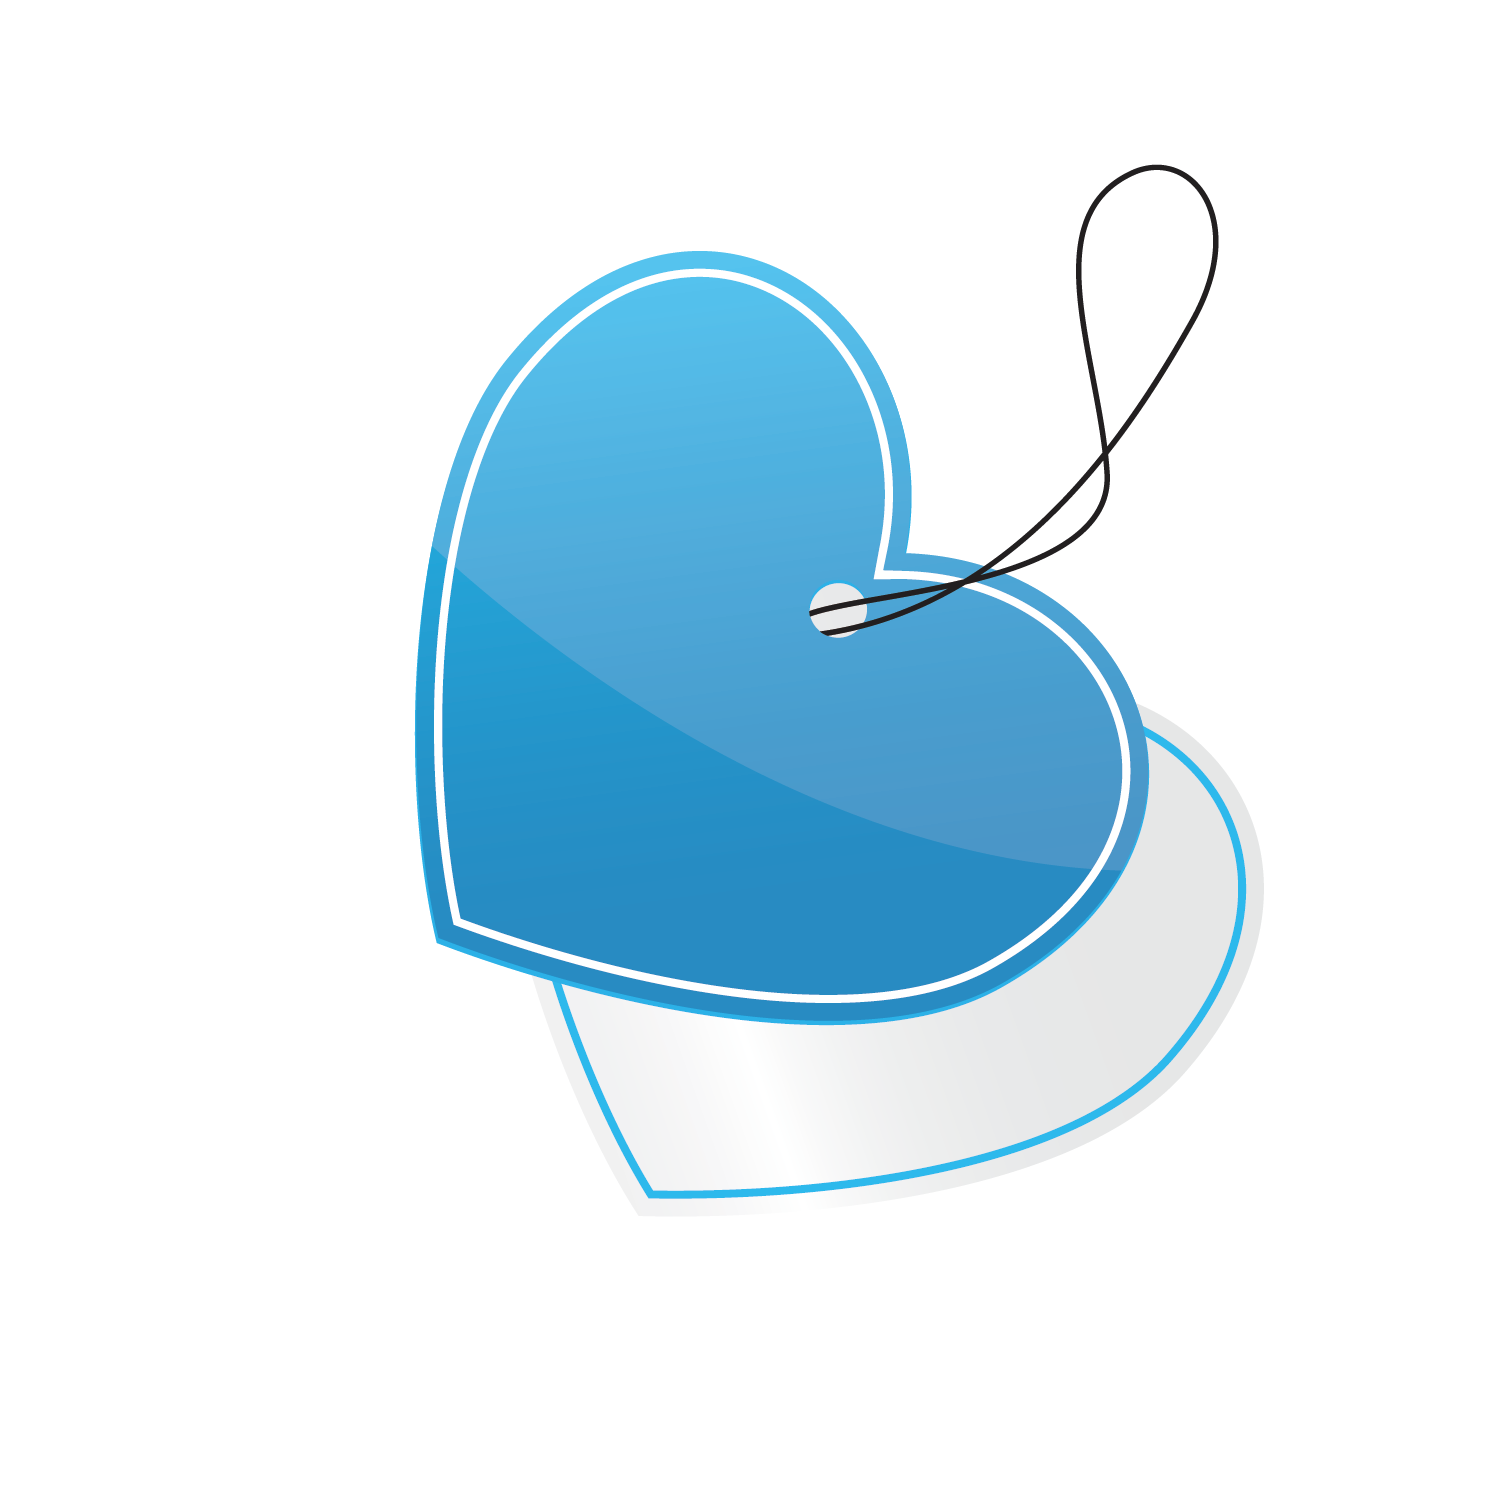 png freeuse library Vector donut teal. Blue heart shaped tag